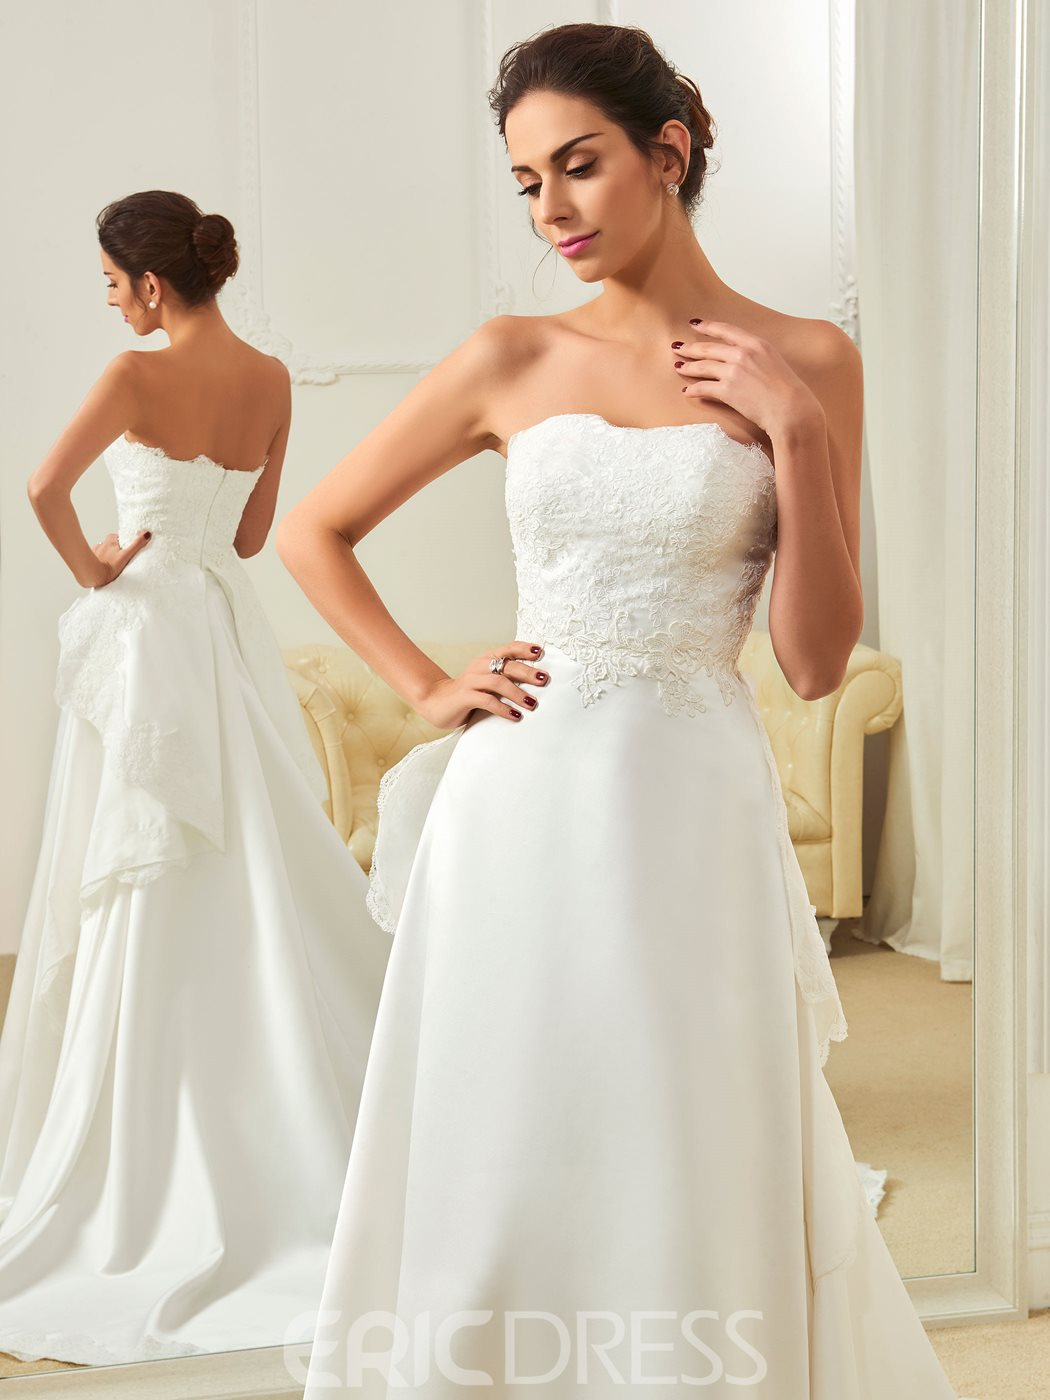 Ericdress High Quality Appliques Sweetheart Court Train A Line Wedding Dress